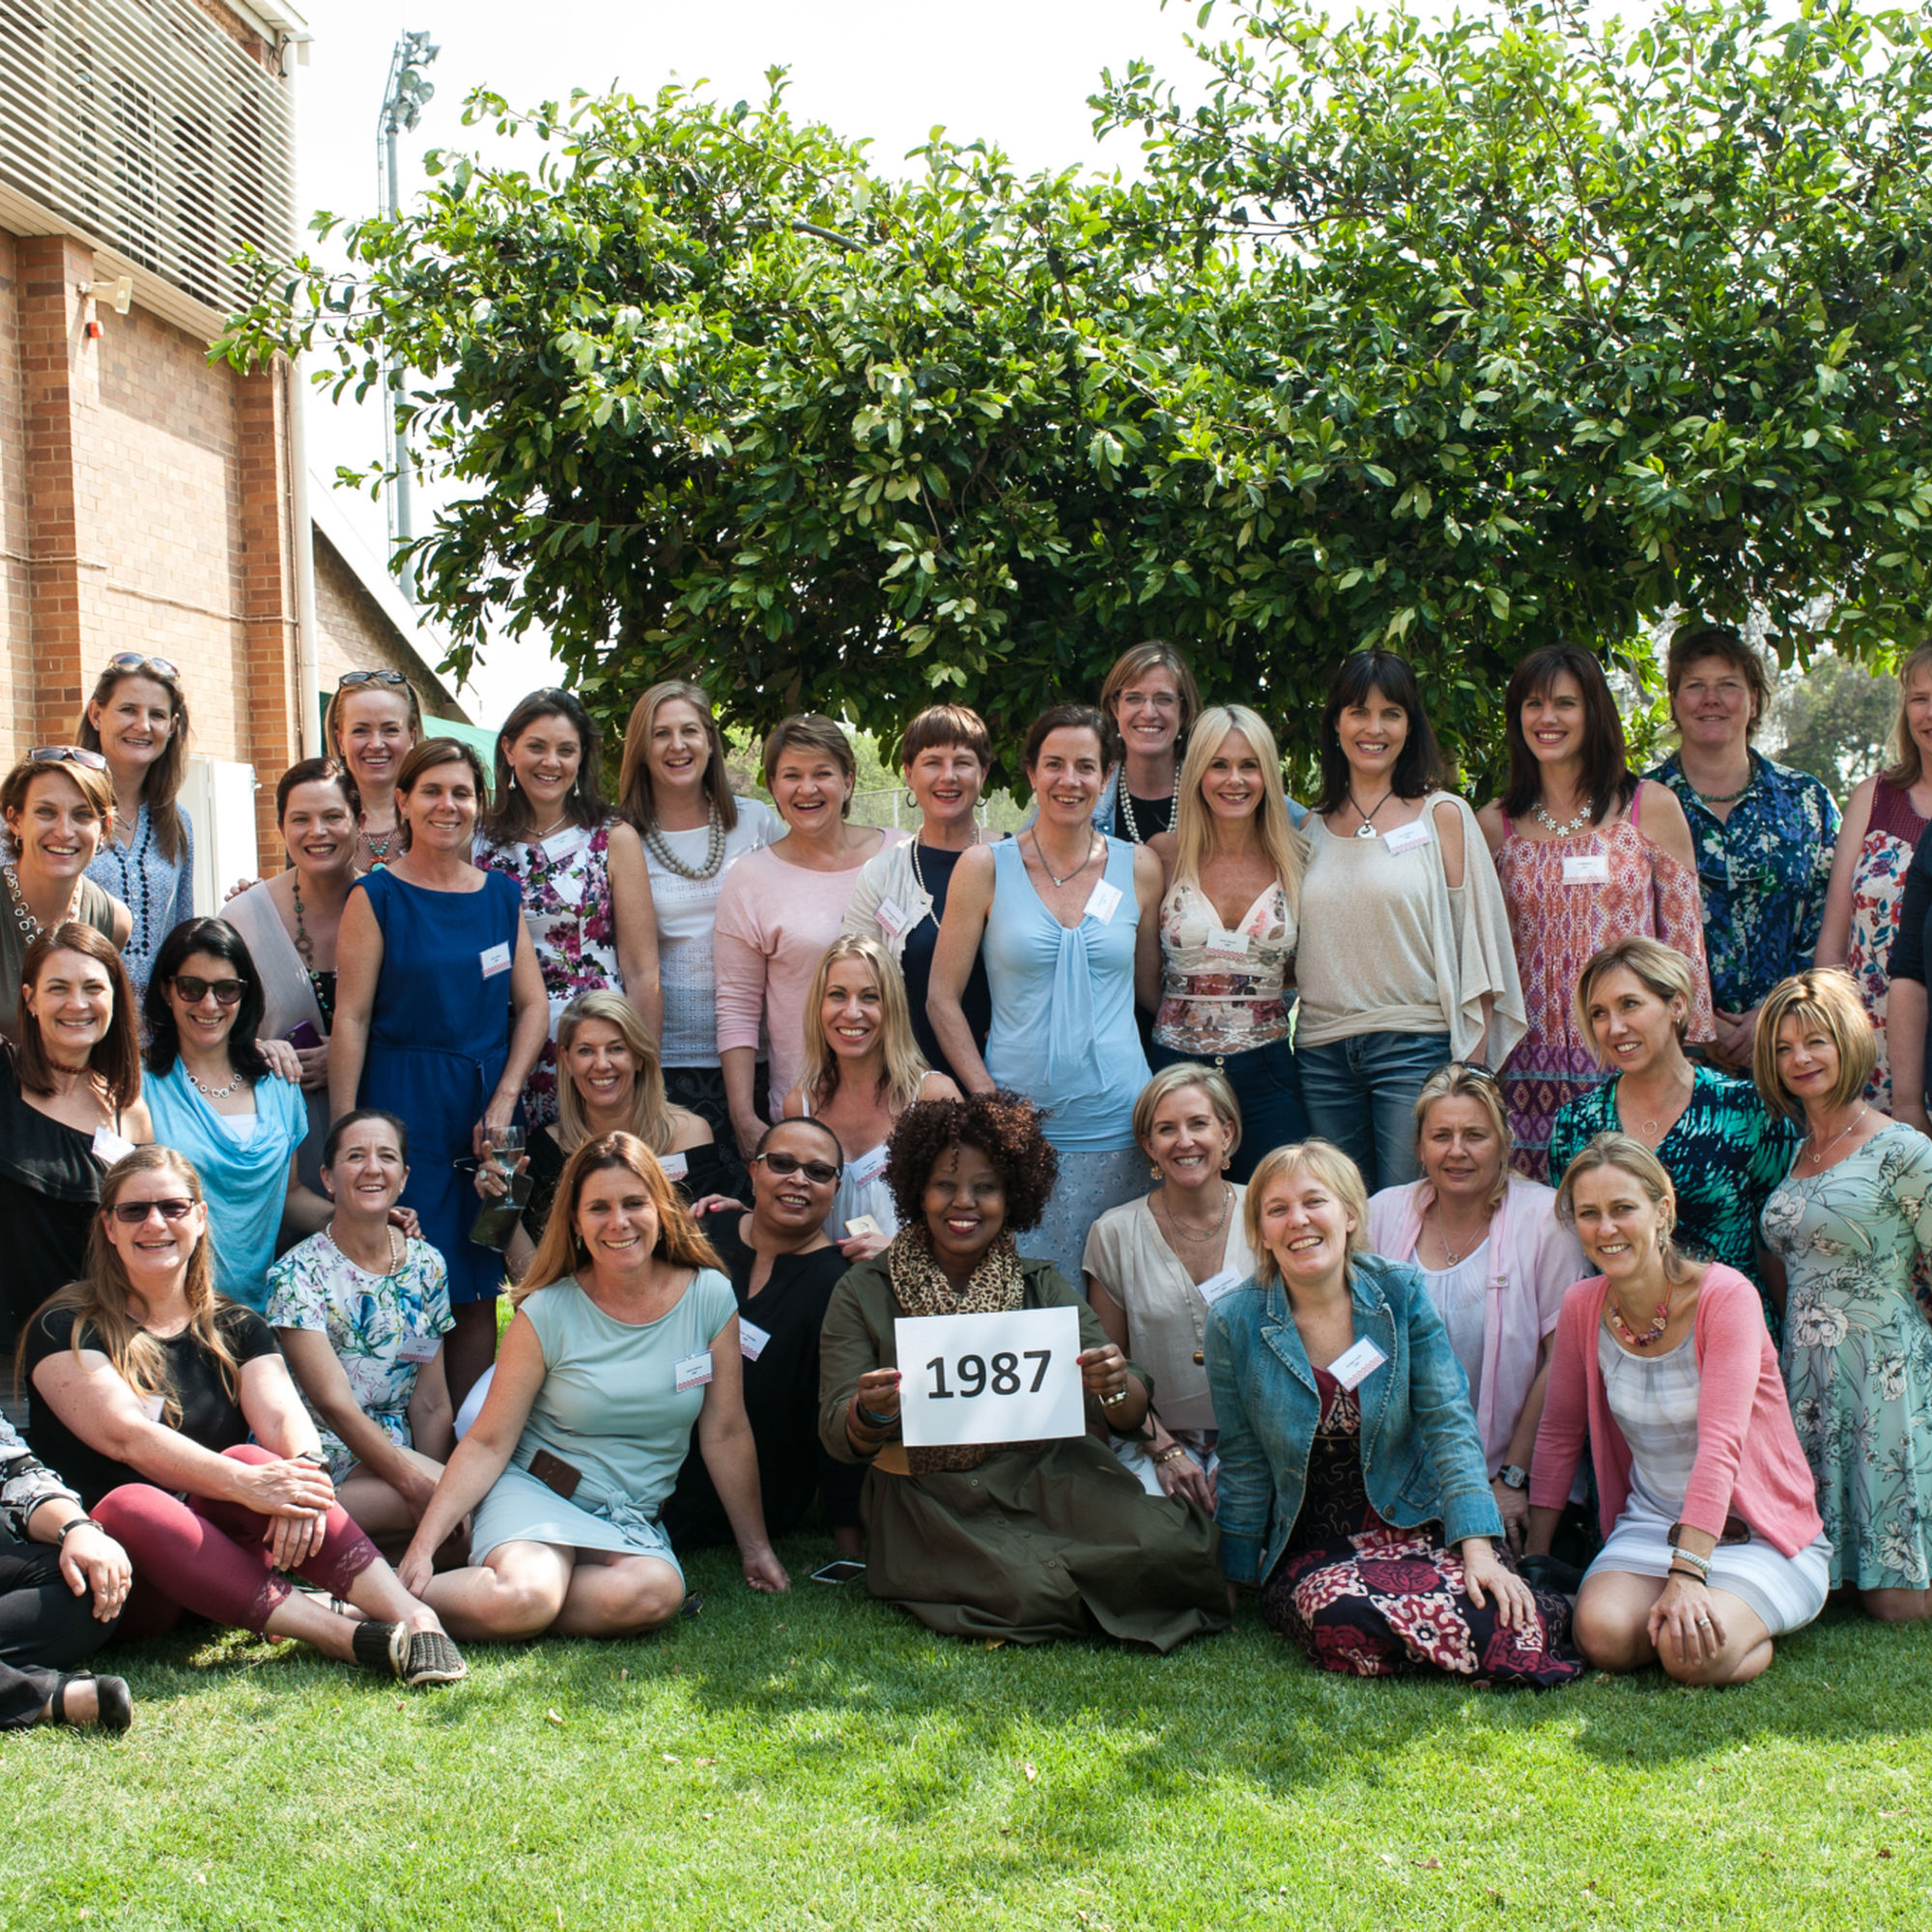 The class of 1987 celebrating 30 years since matriculating at old girls day